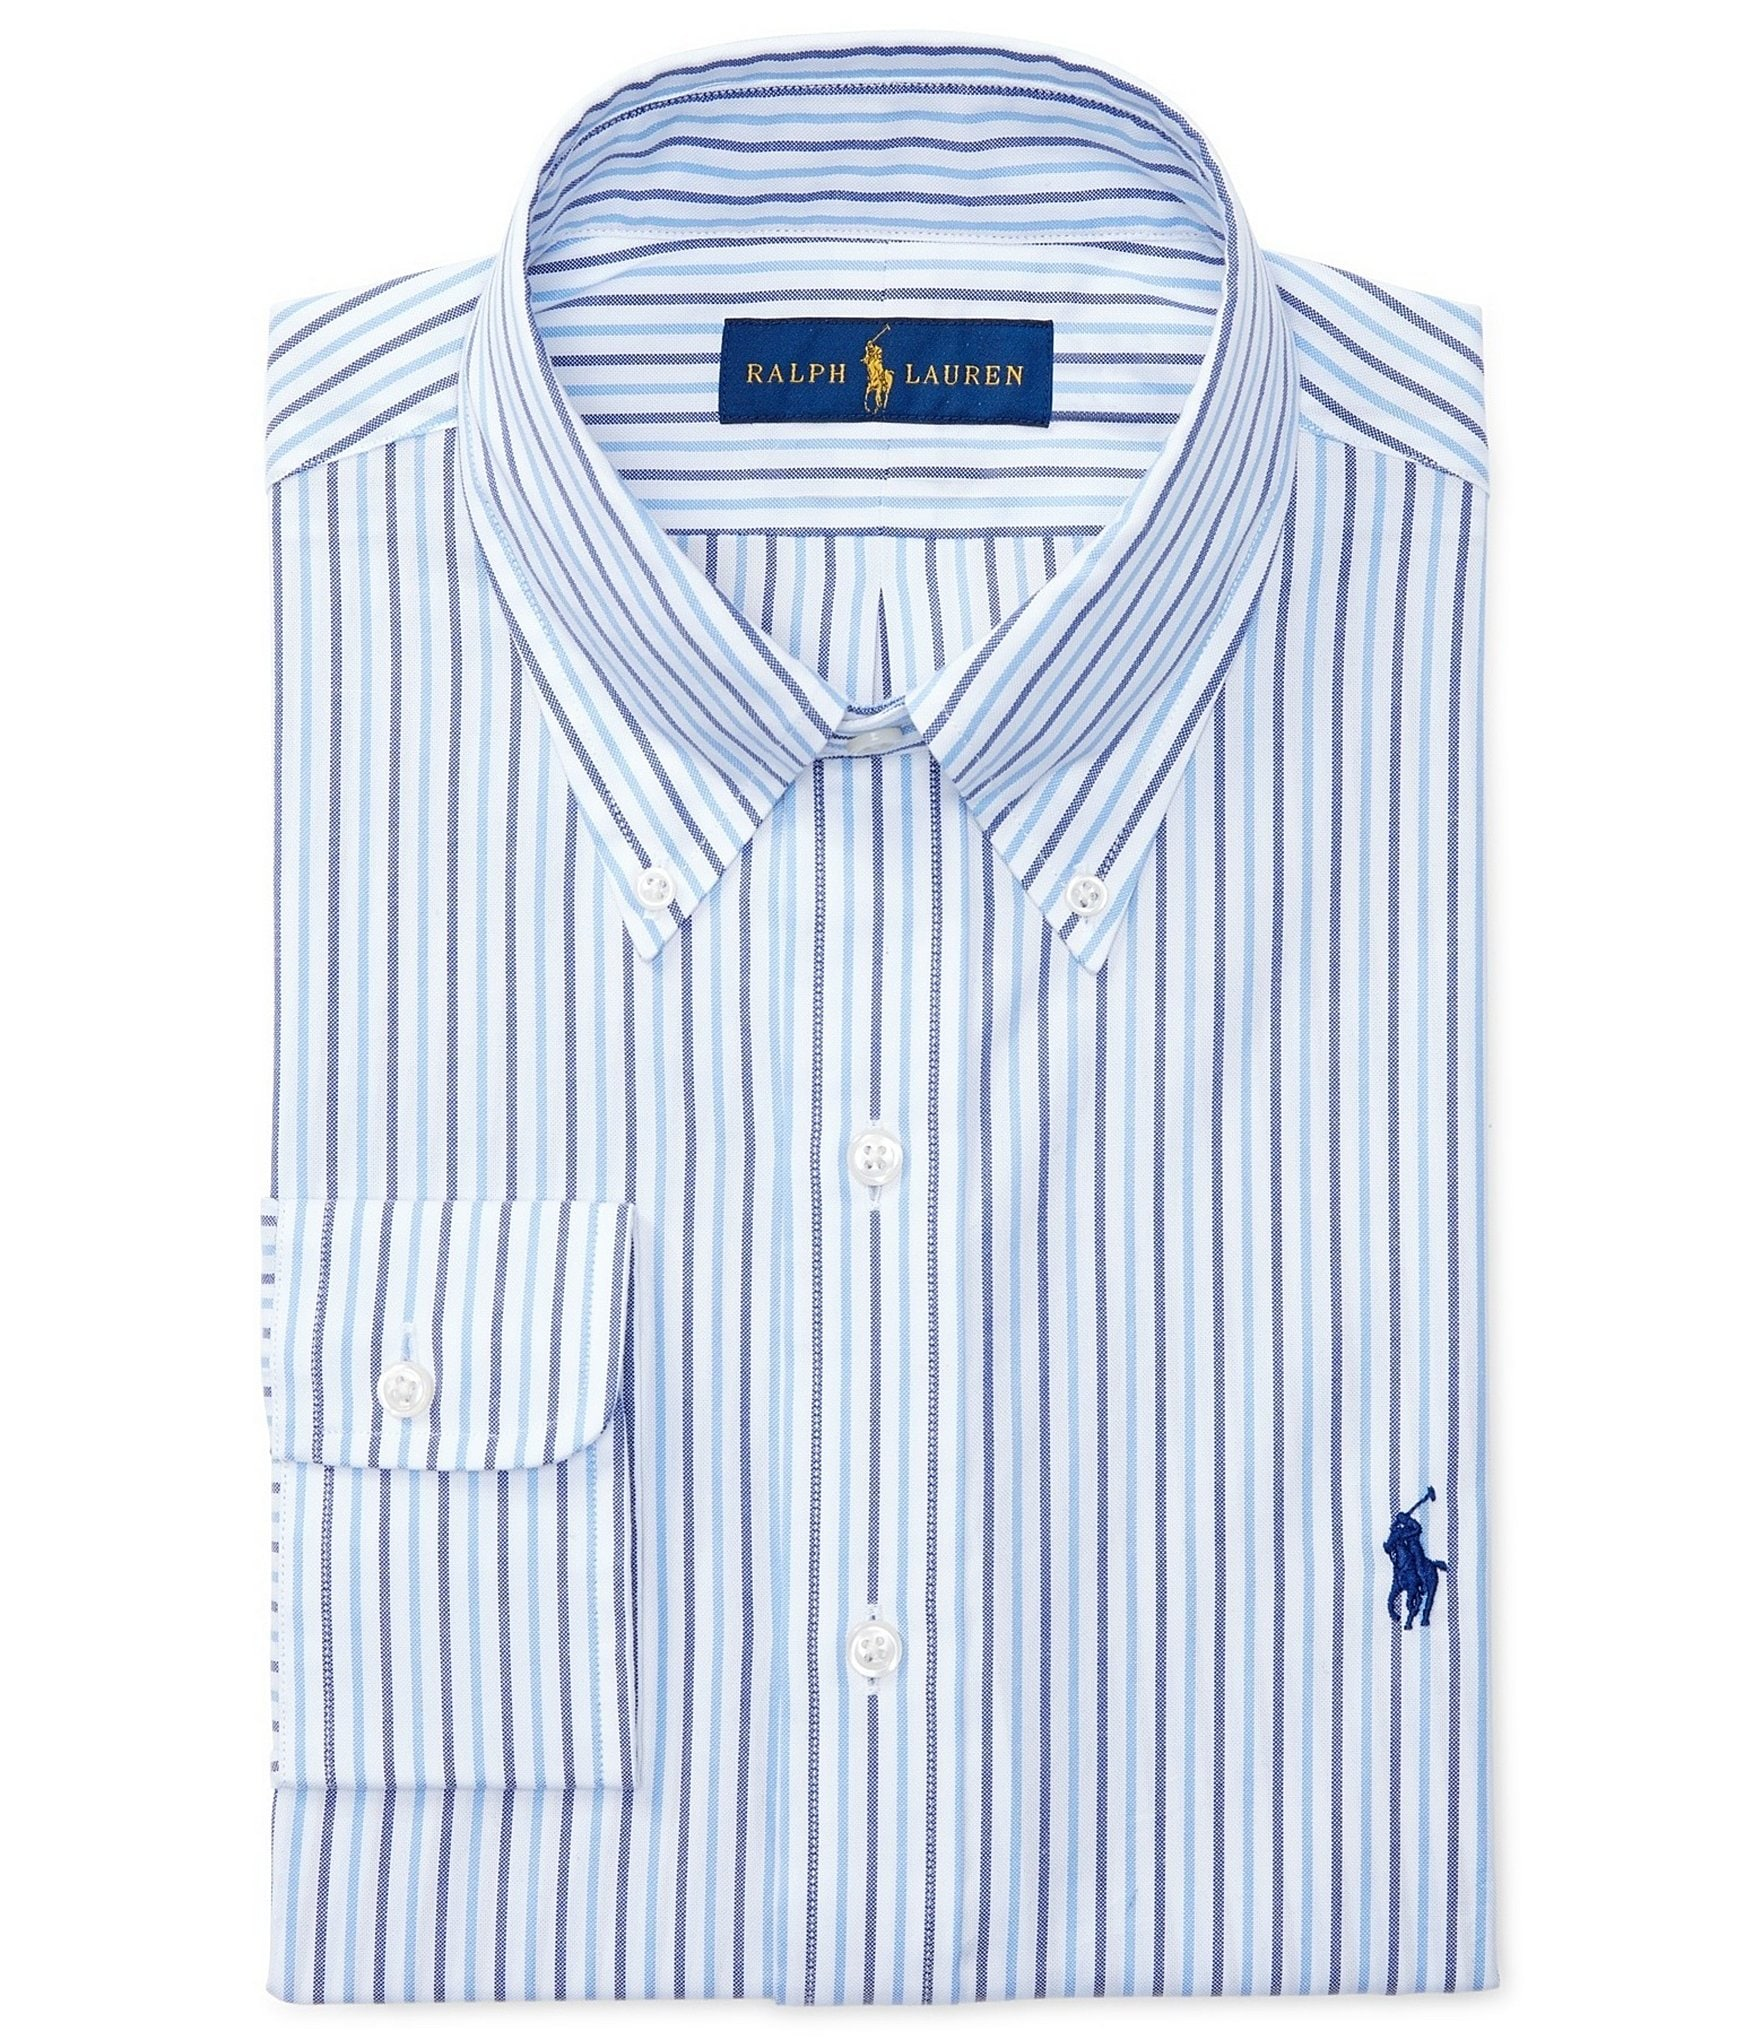 Polo ralph lauren fitted classic fit button down collar for Dress shirt collar fit